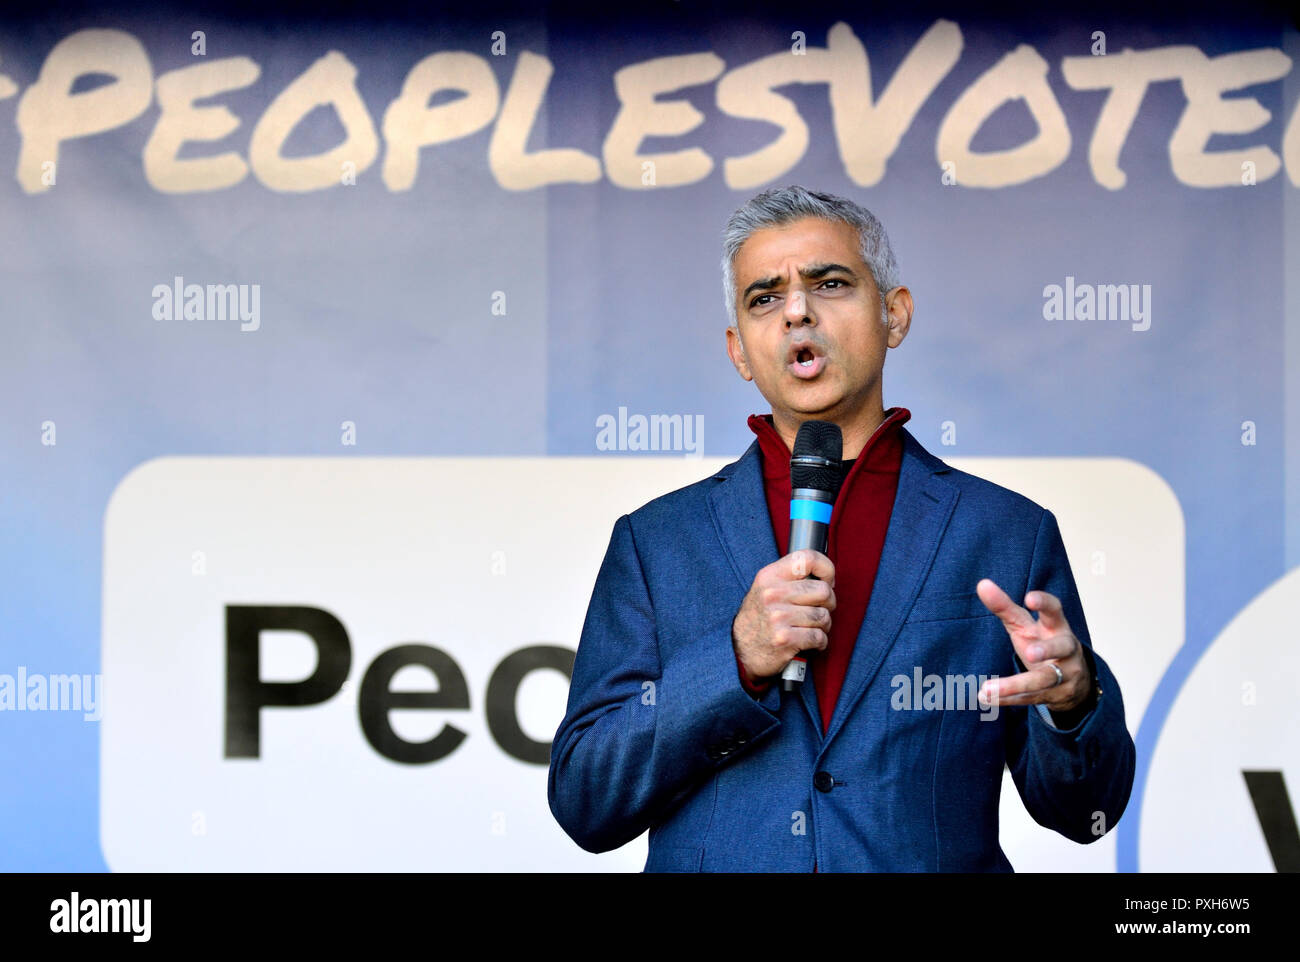 Sadiq Khan, Mayor of London, speaking at the People's Vote March in support of a second Brexit referendum, London, 20th October 2018 - Stock Image